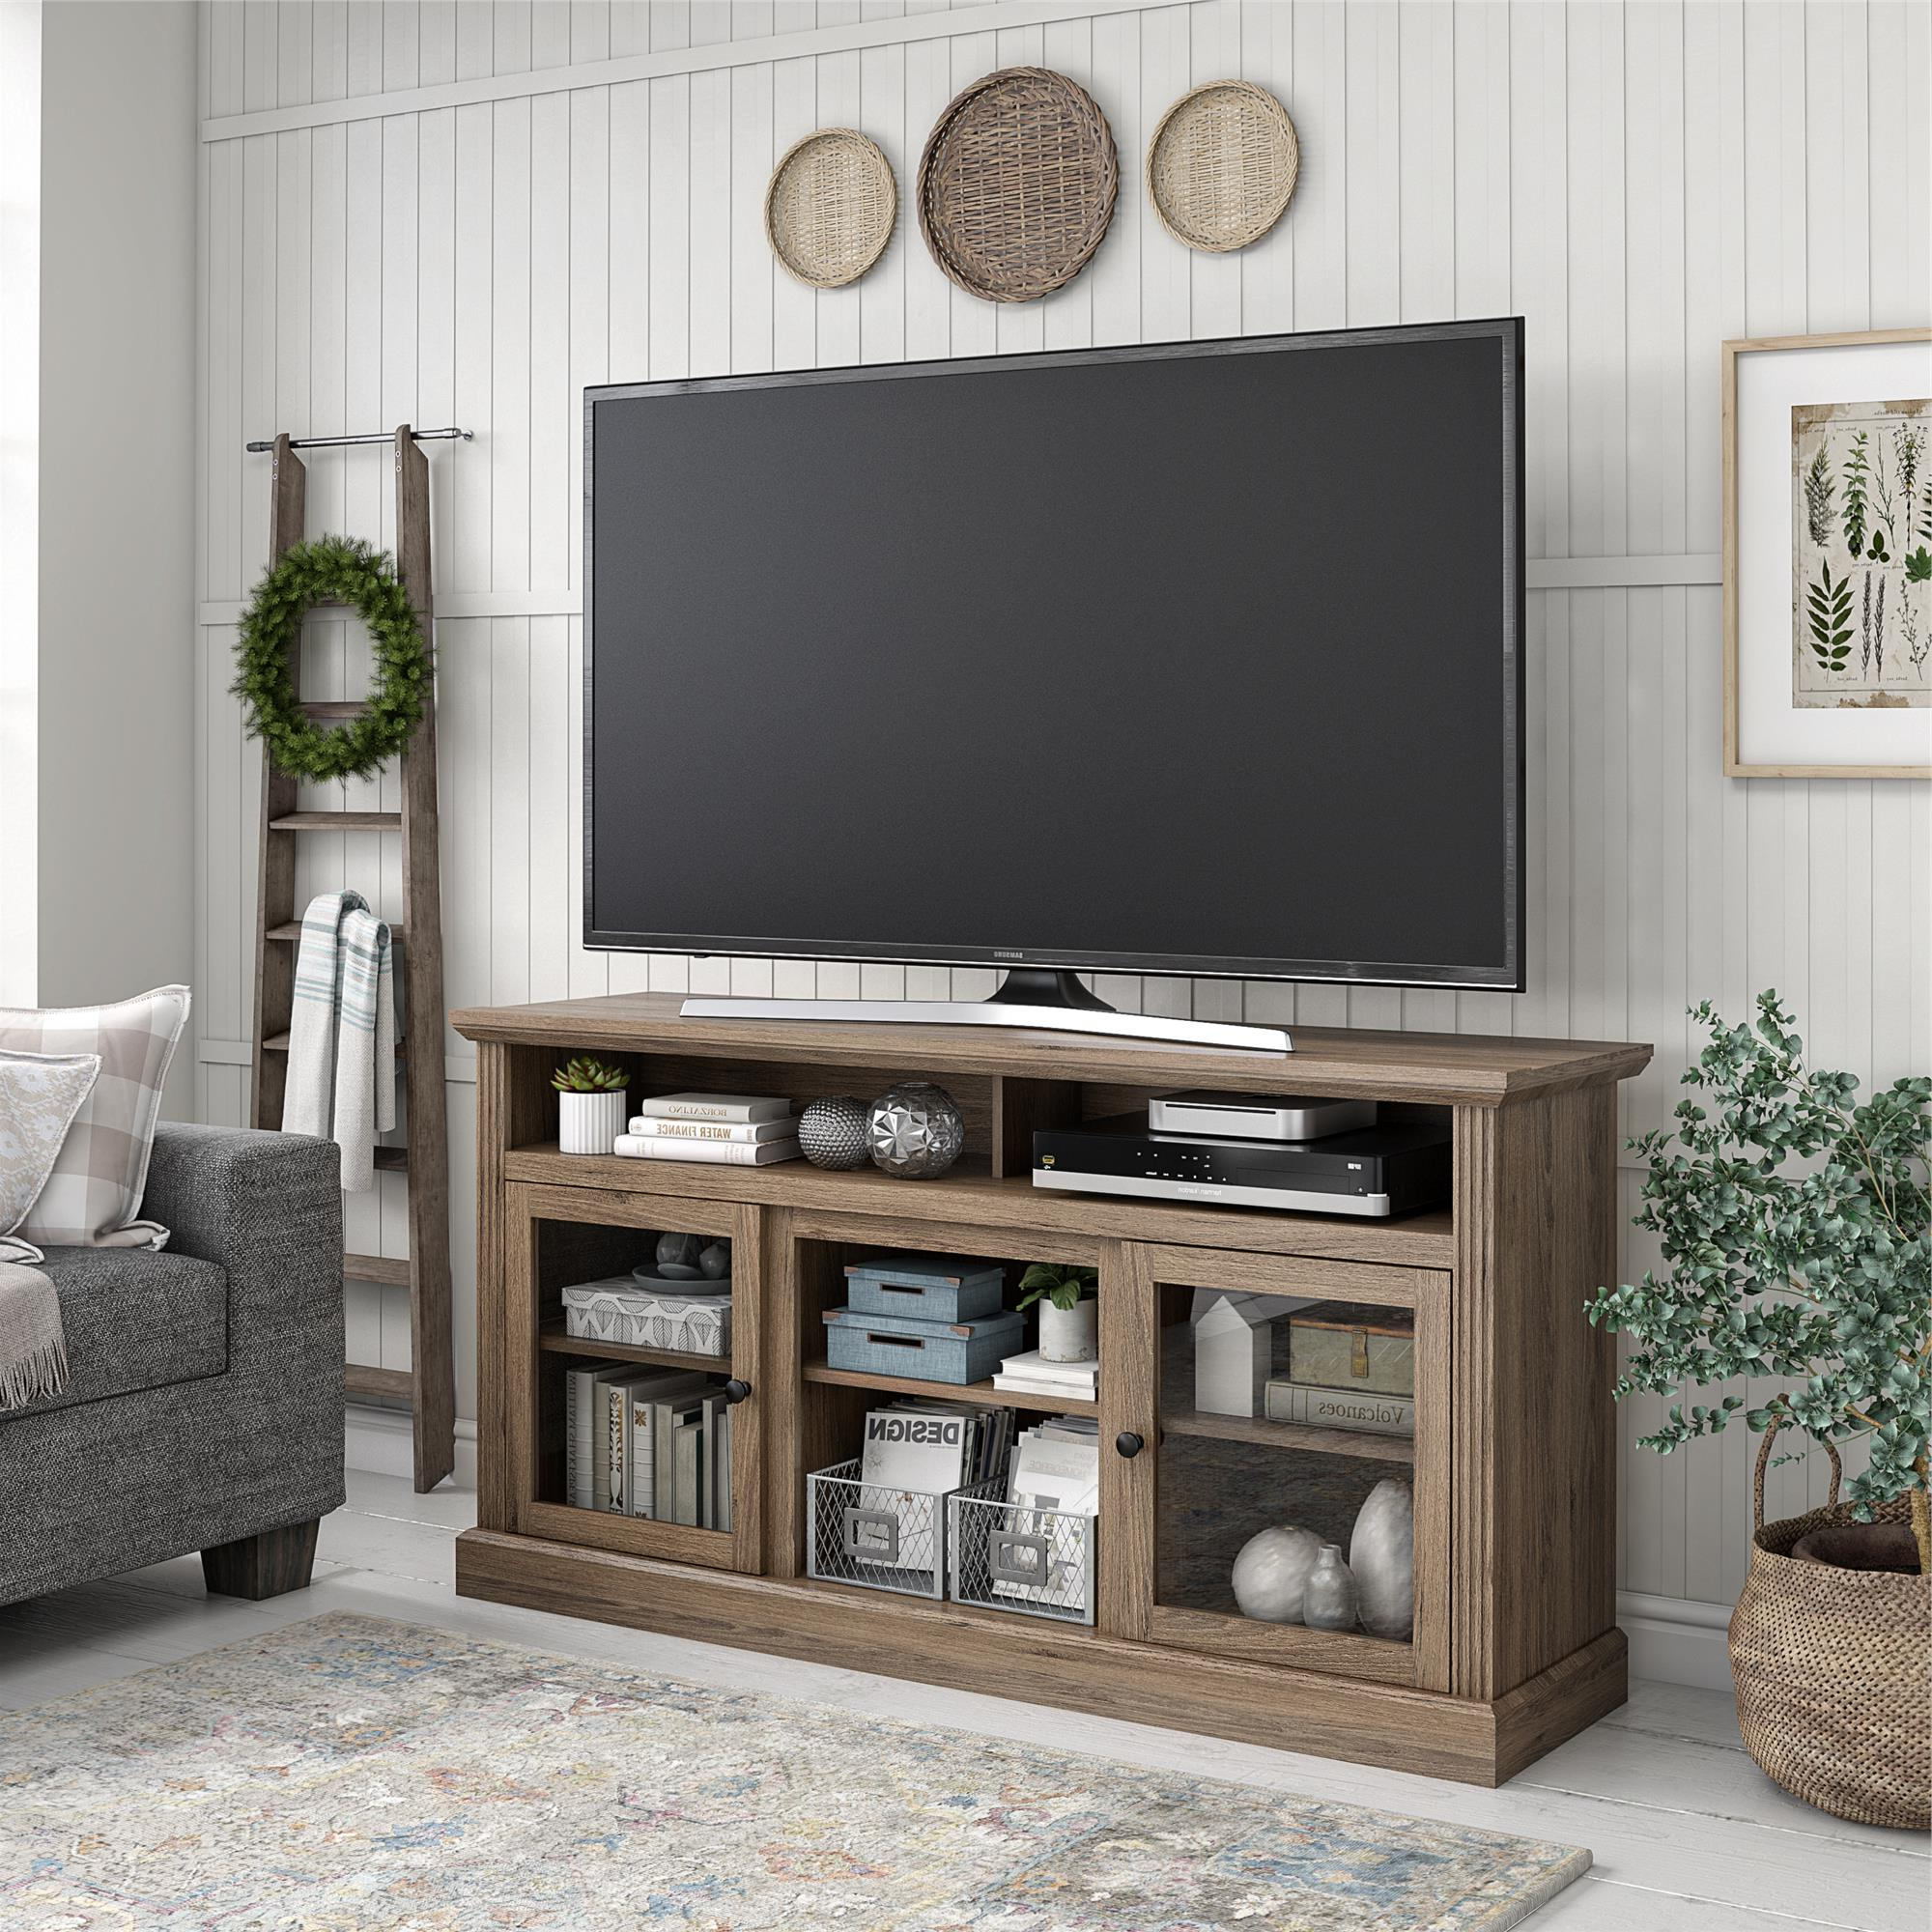 """Favorite Ameriwood Home Leesburg Tv Stand For Tvs Up To 65"""", Rustic In Buckley Tv Stands For Tvs Up To 65"""" (View 3 of 20)"""